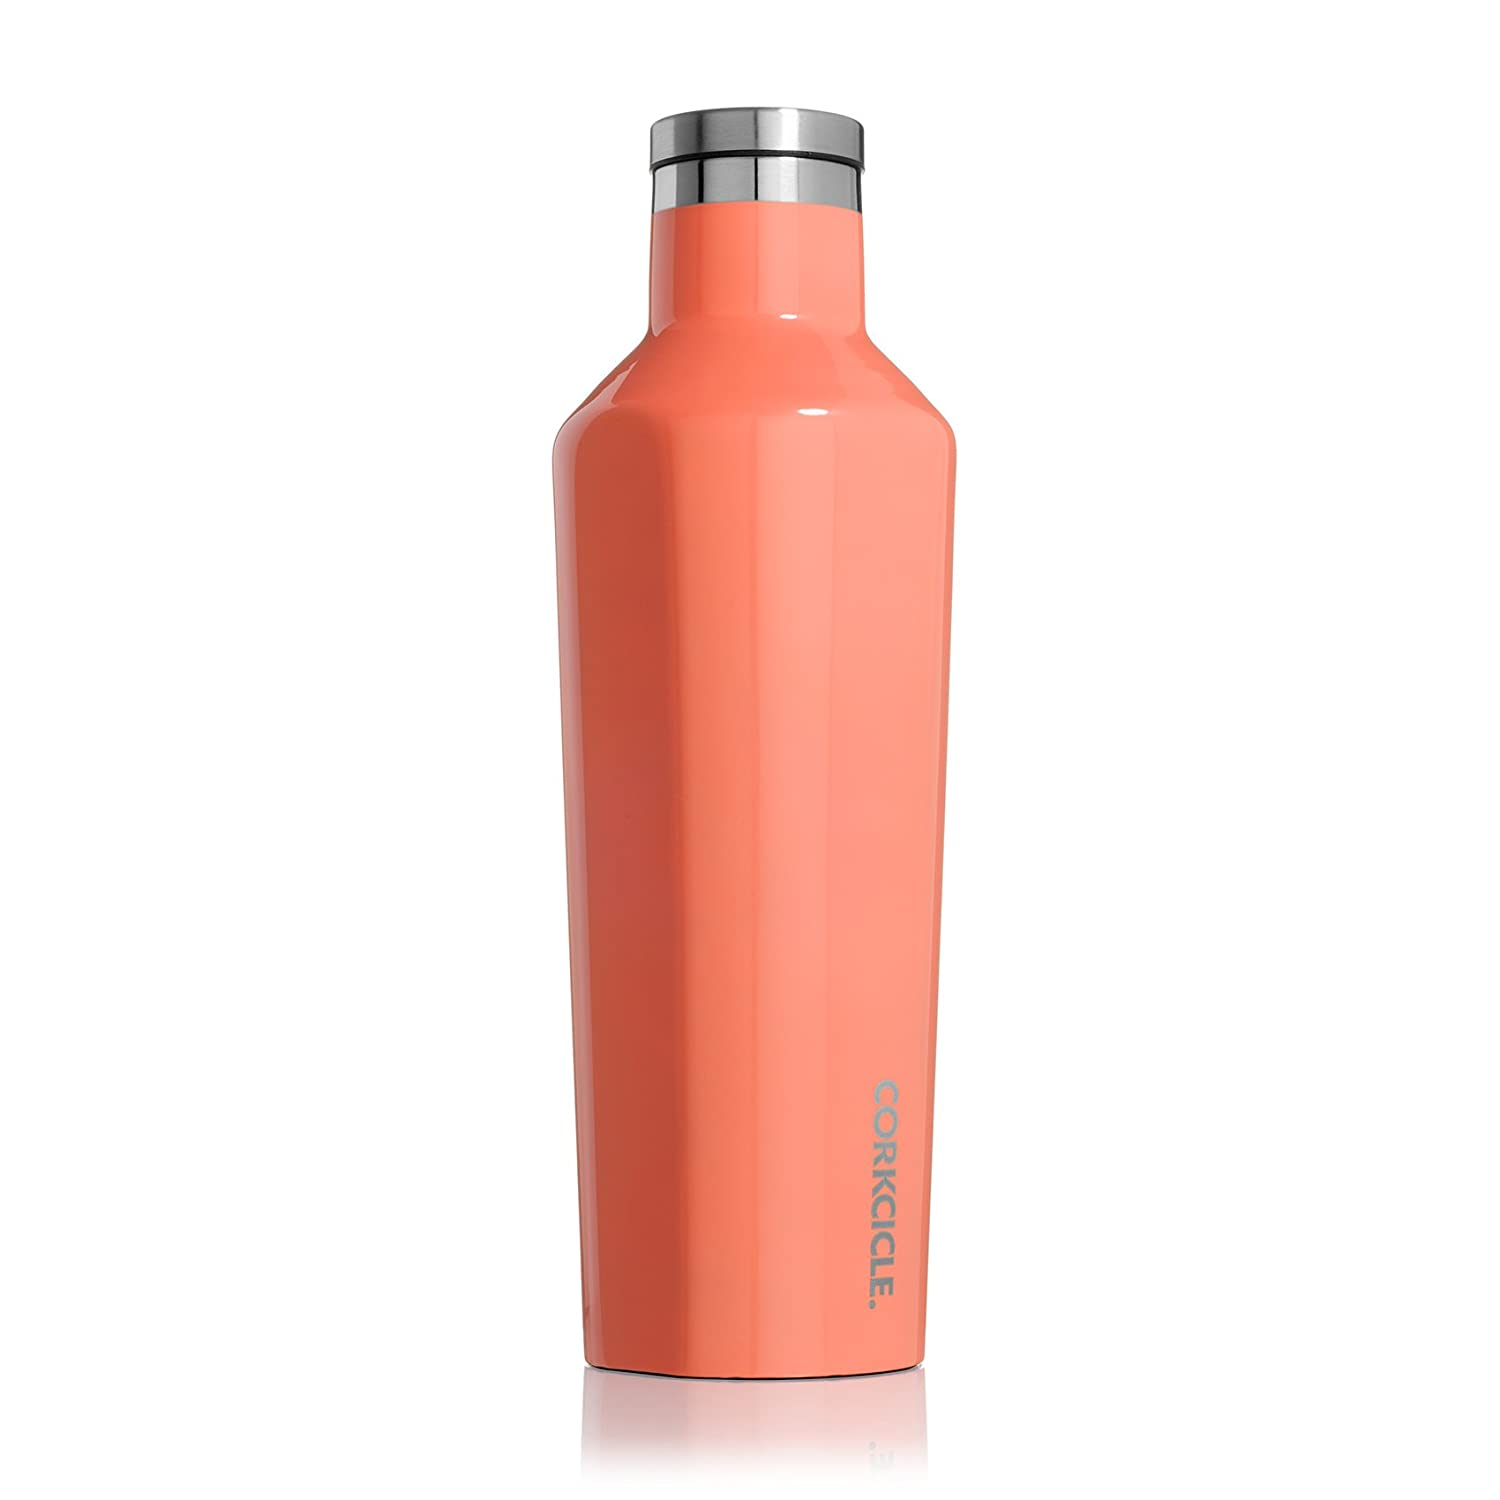 Brushed Steel C2009BS Corkcicle Canteen Classic Collection-Water Bottle /& Thermos-Triple Insulated Shatterproof Stainless Steel 9 oz